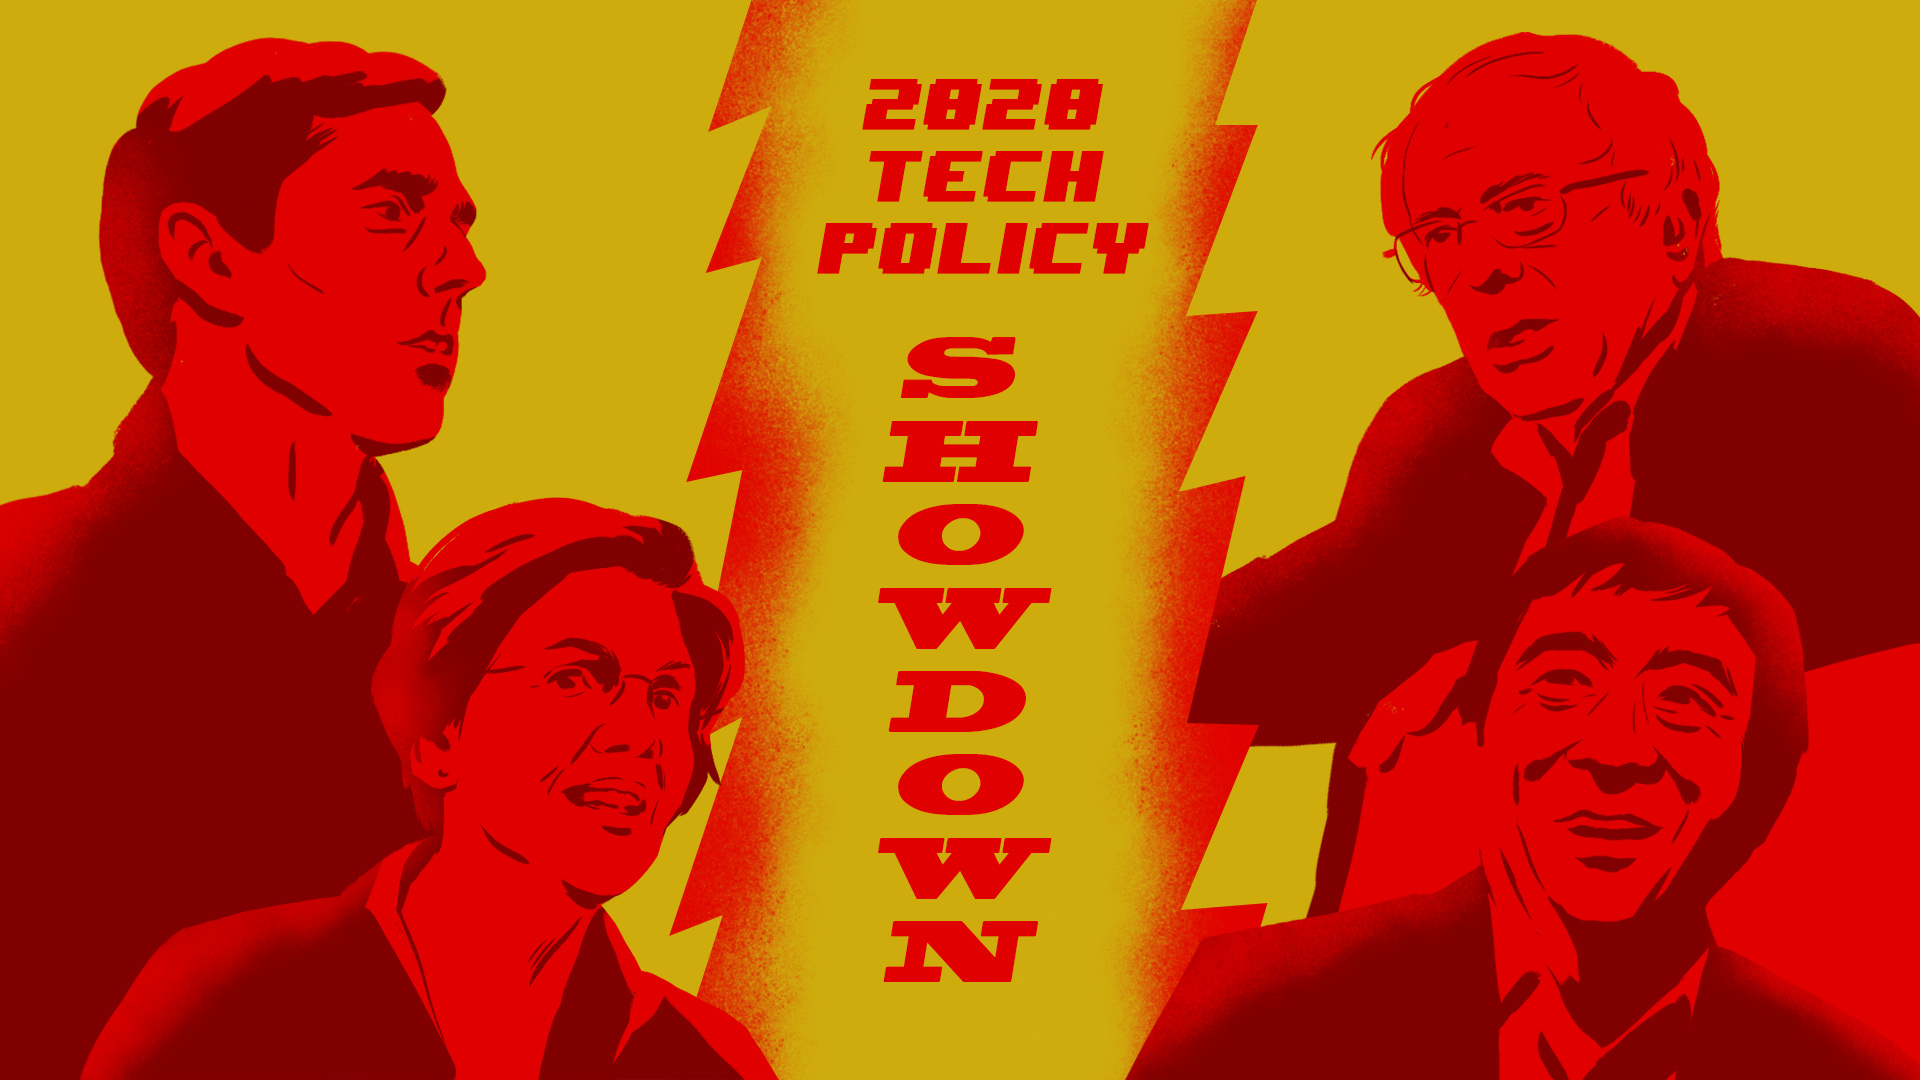 2020 Tech Policy Showdown